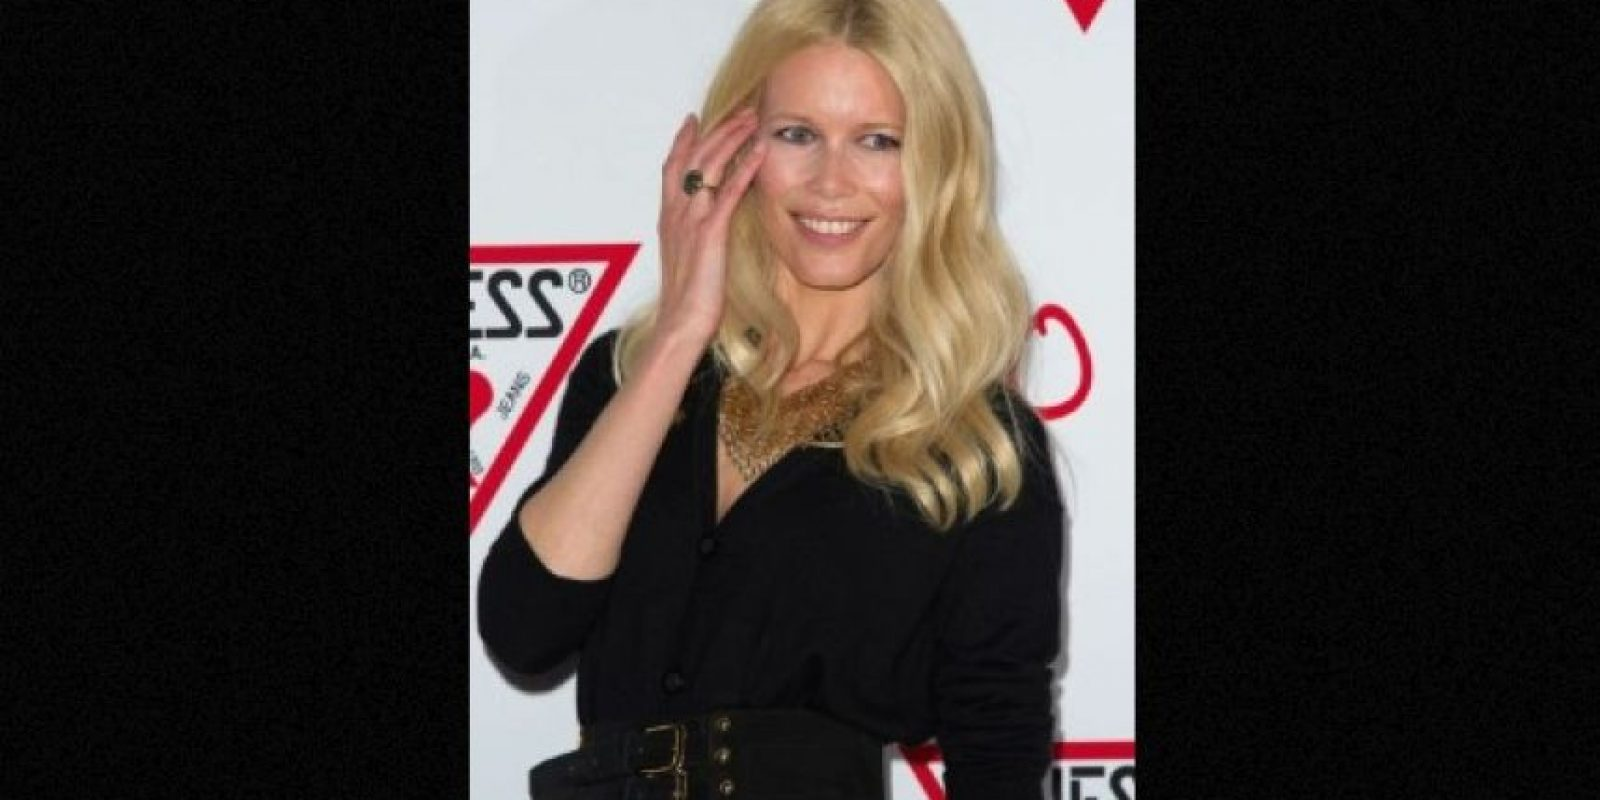 Claudia Schiffer Foto: Getty Images